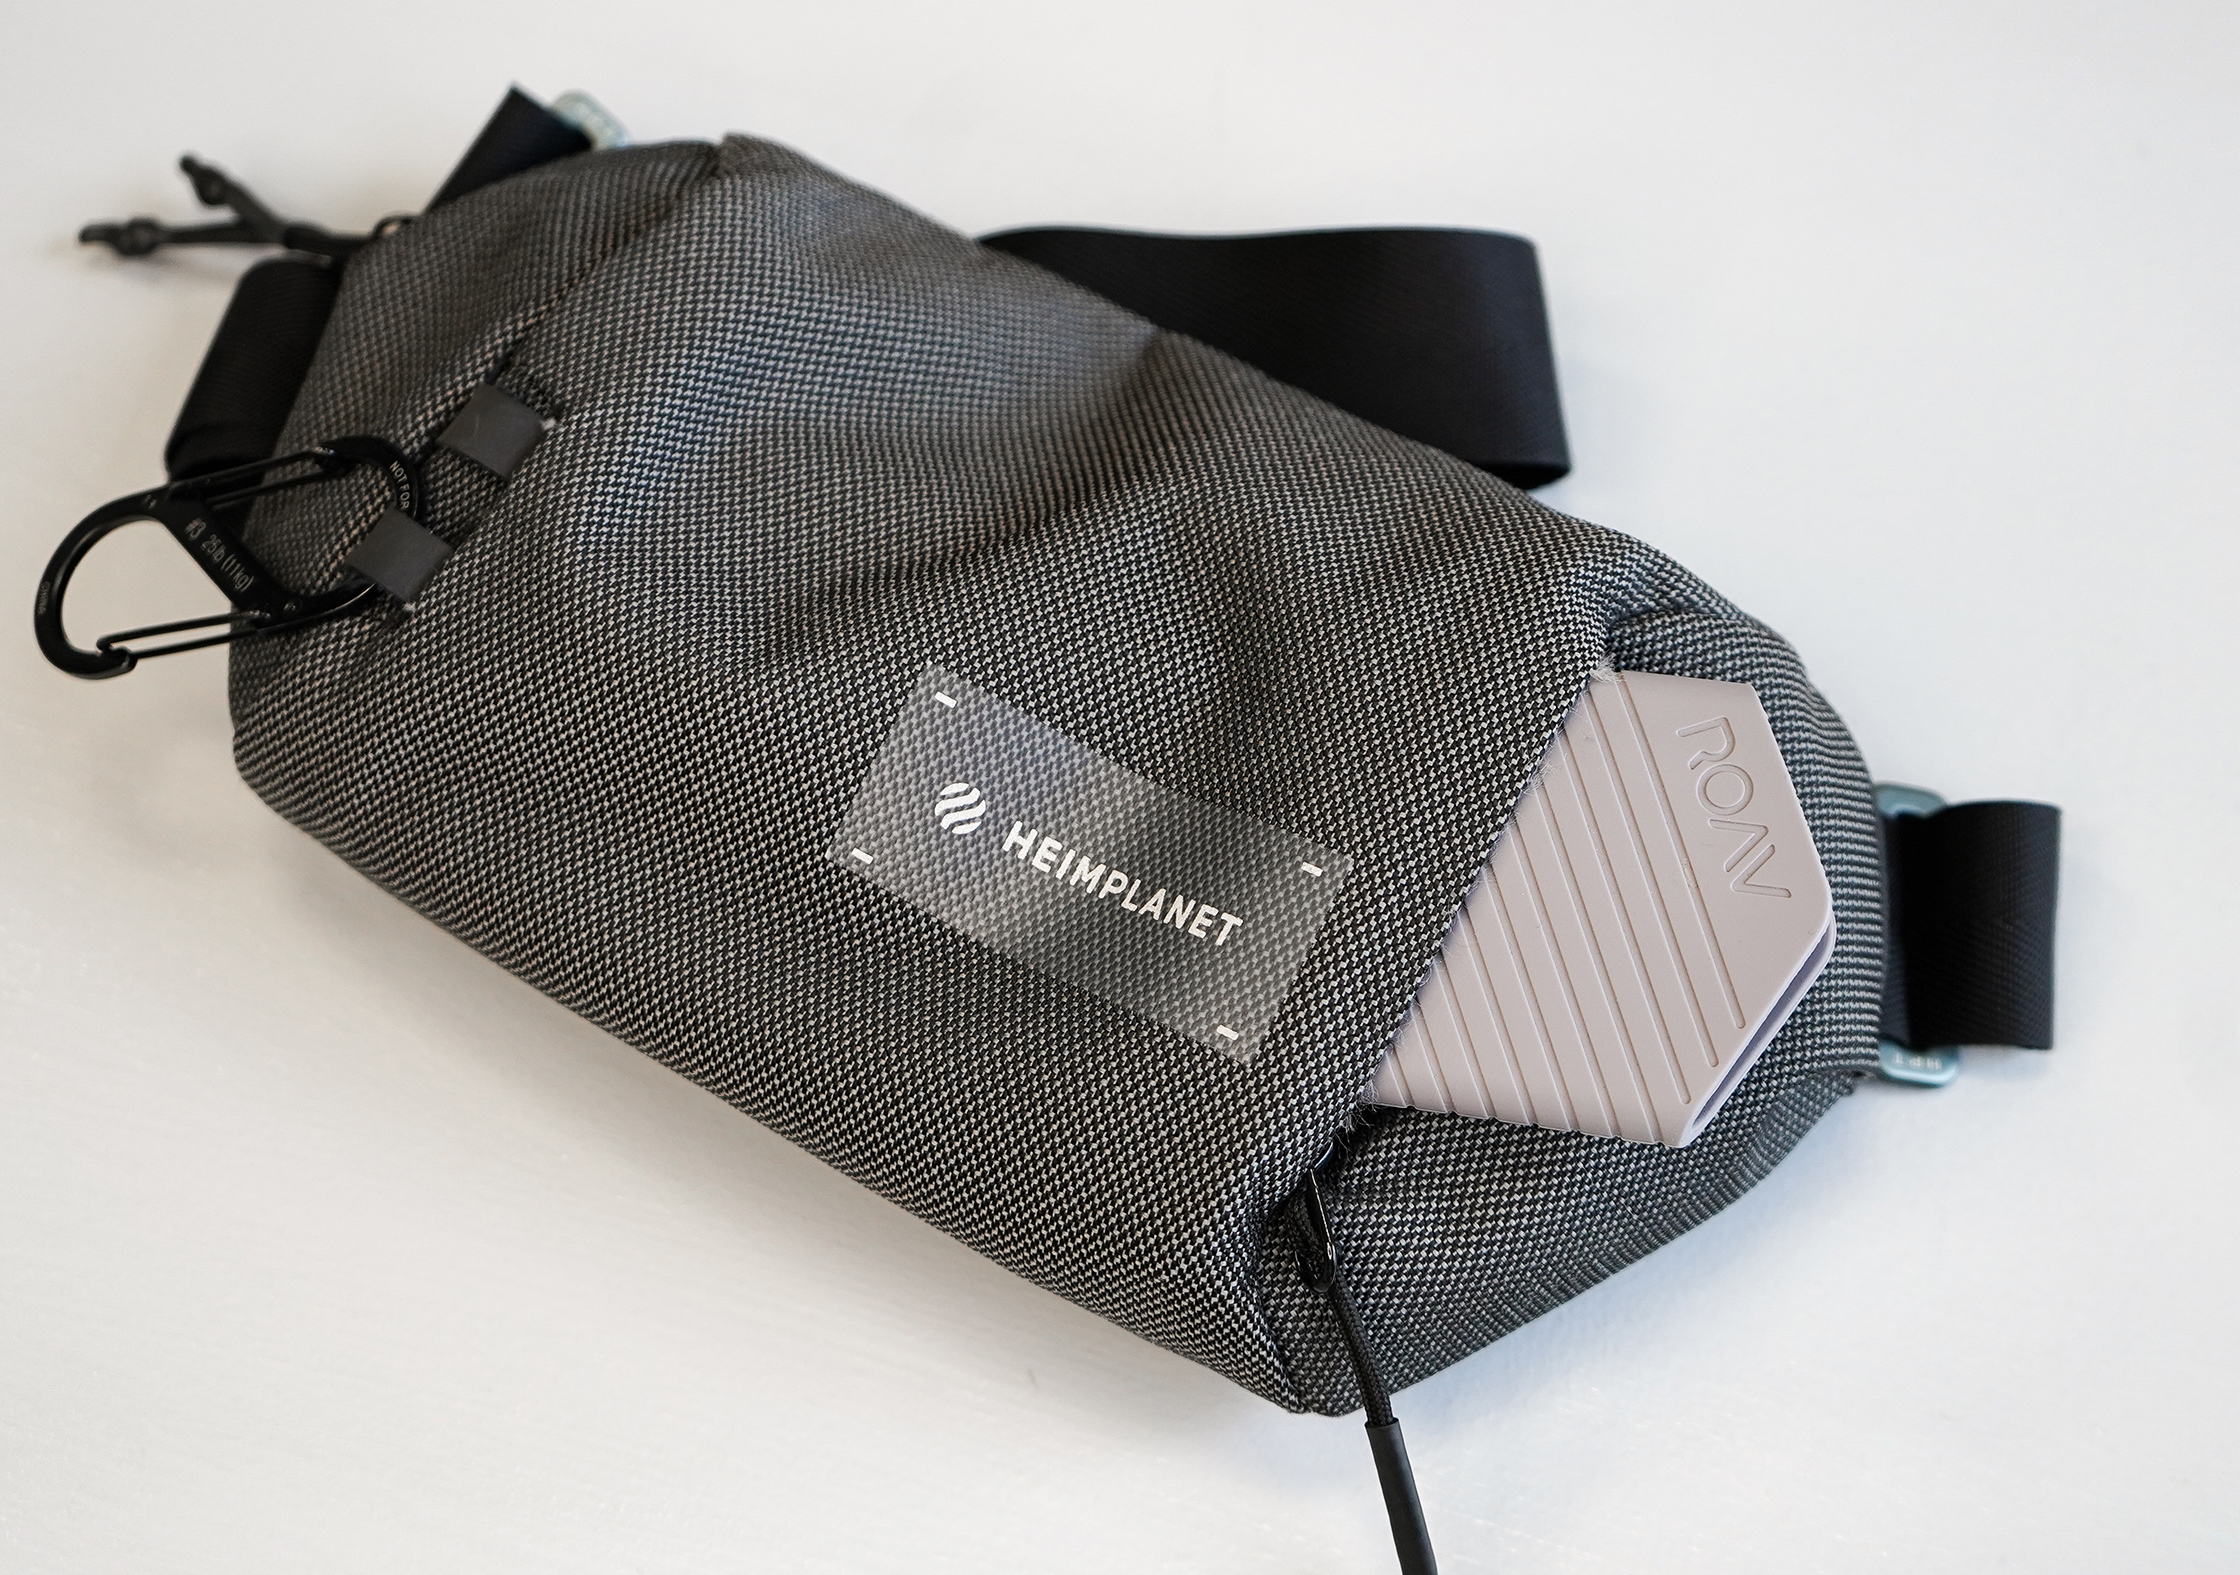 Heimplanet Transit Line Sling Pocket Front Compartment